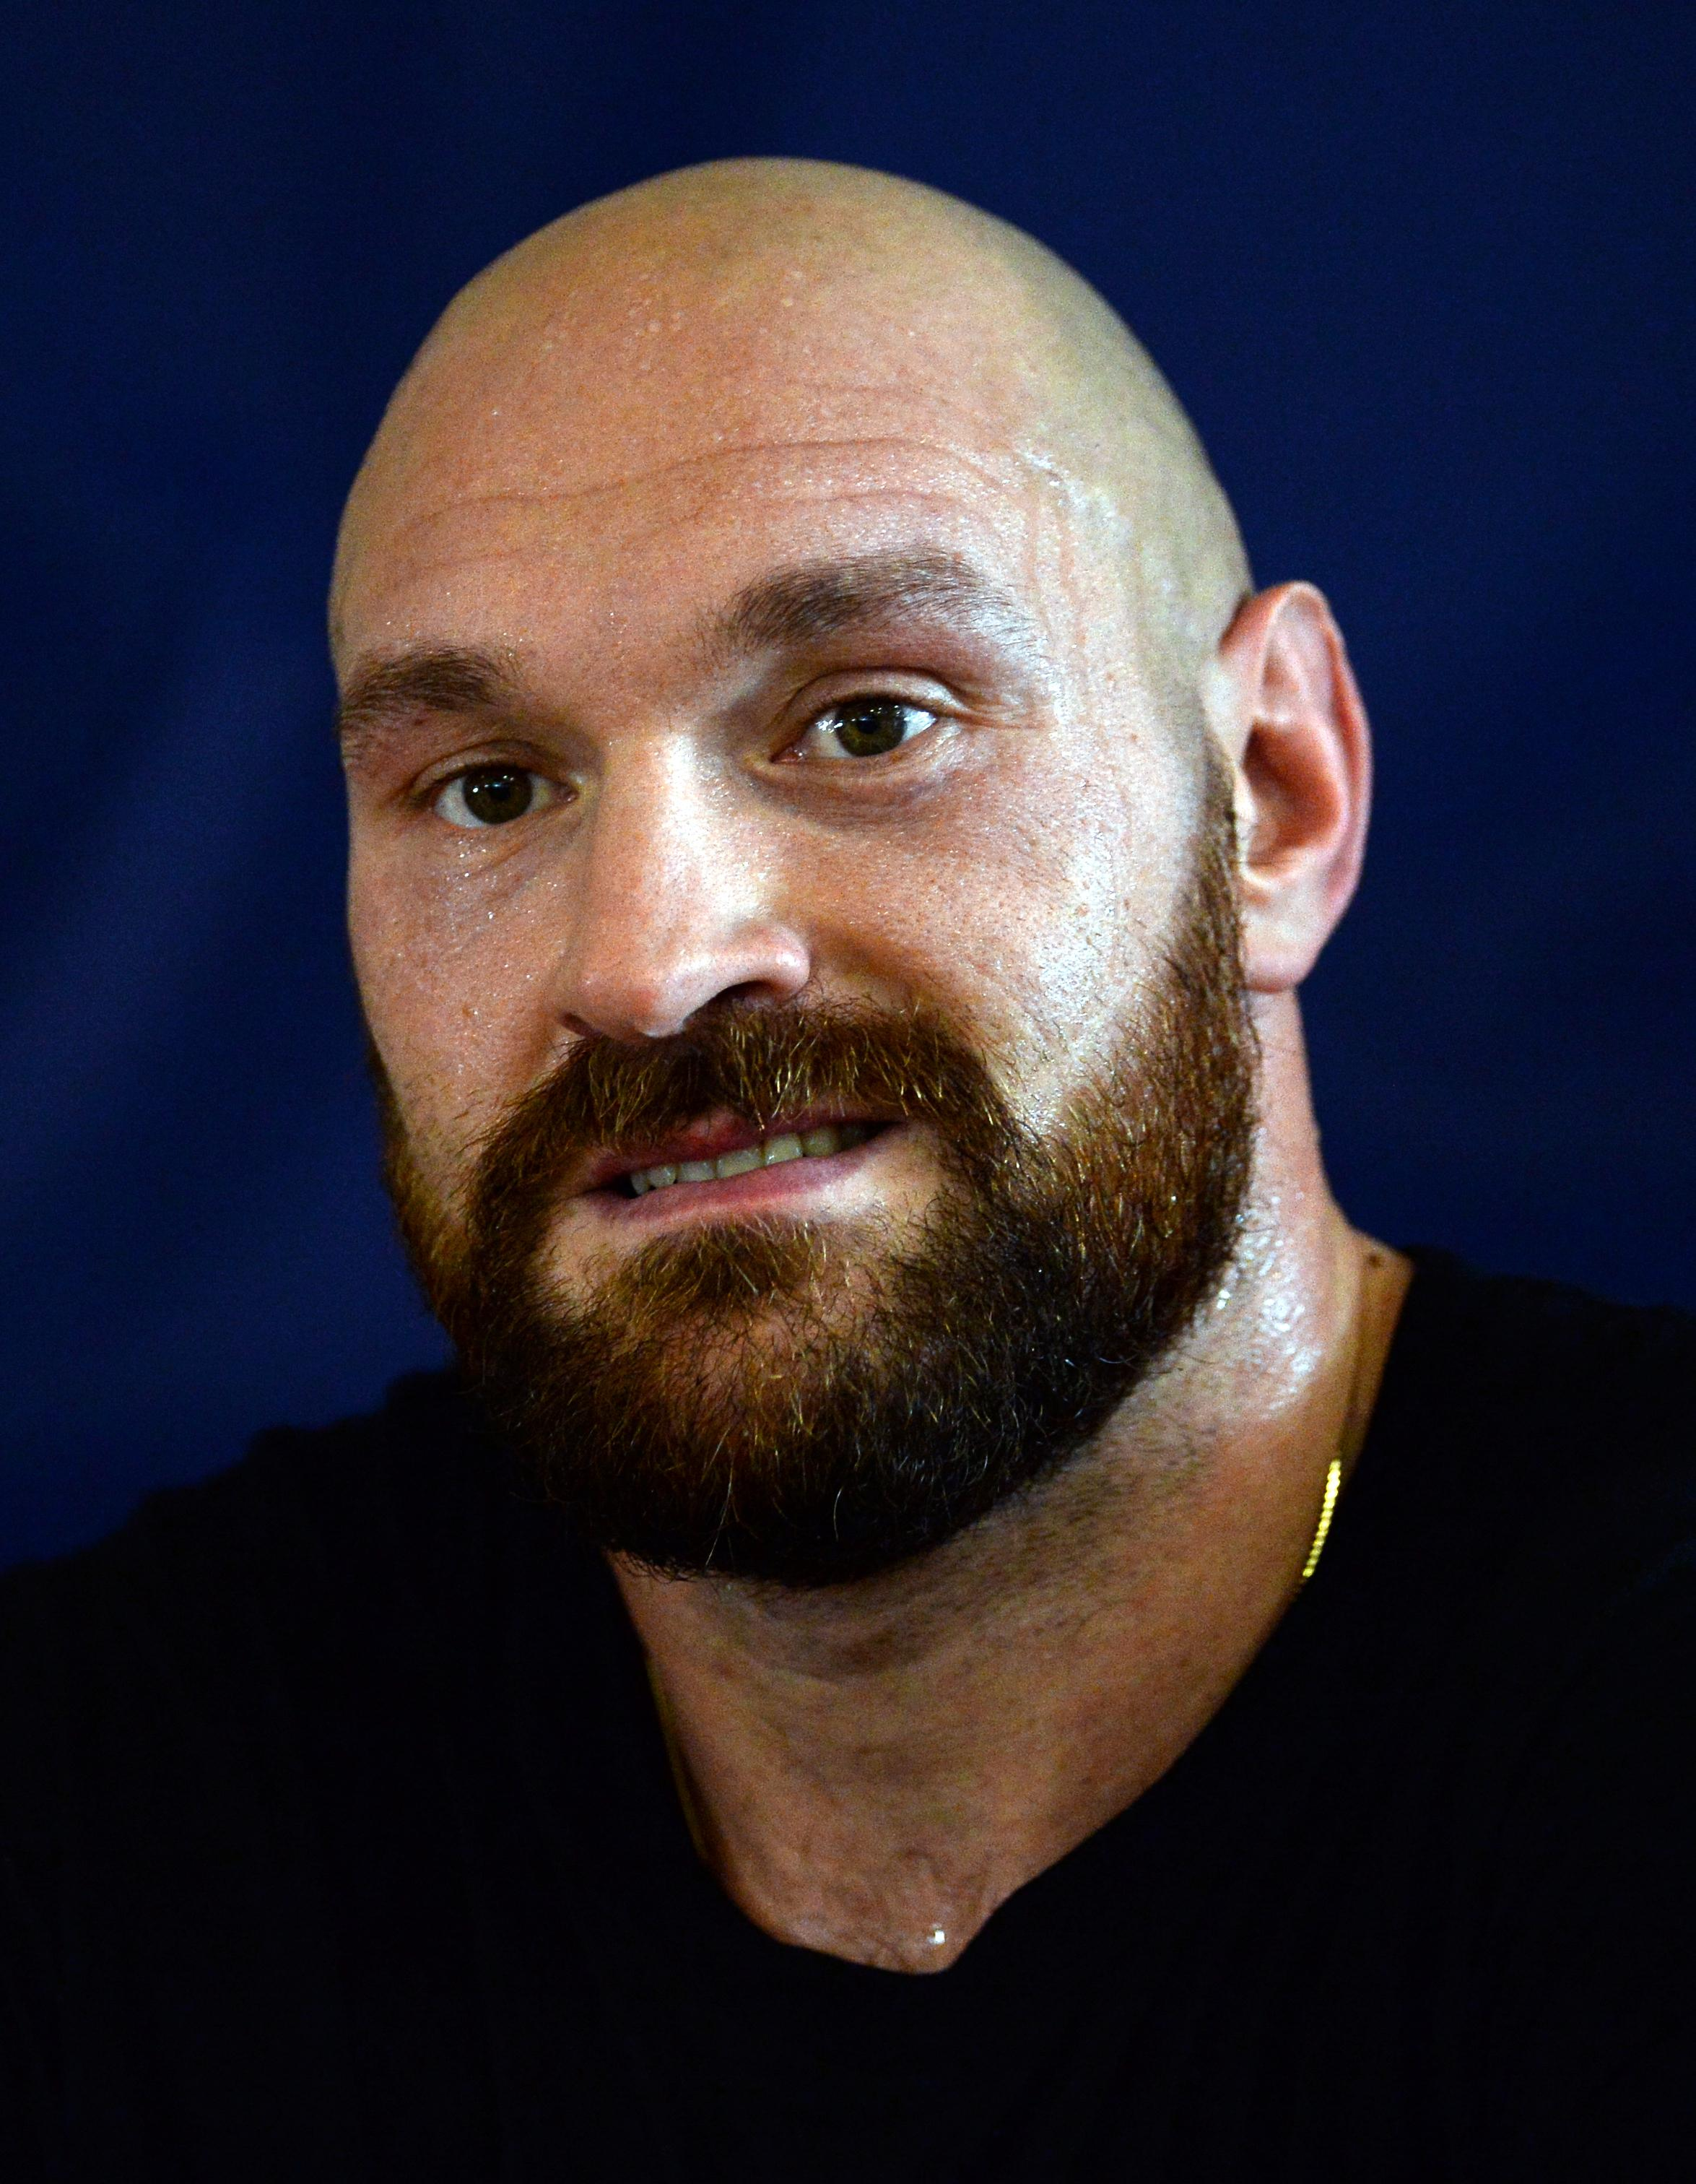 Tyson Fury took to Instagram to announce a fight against Deontay Wilder is edging closer